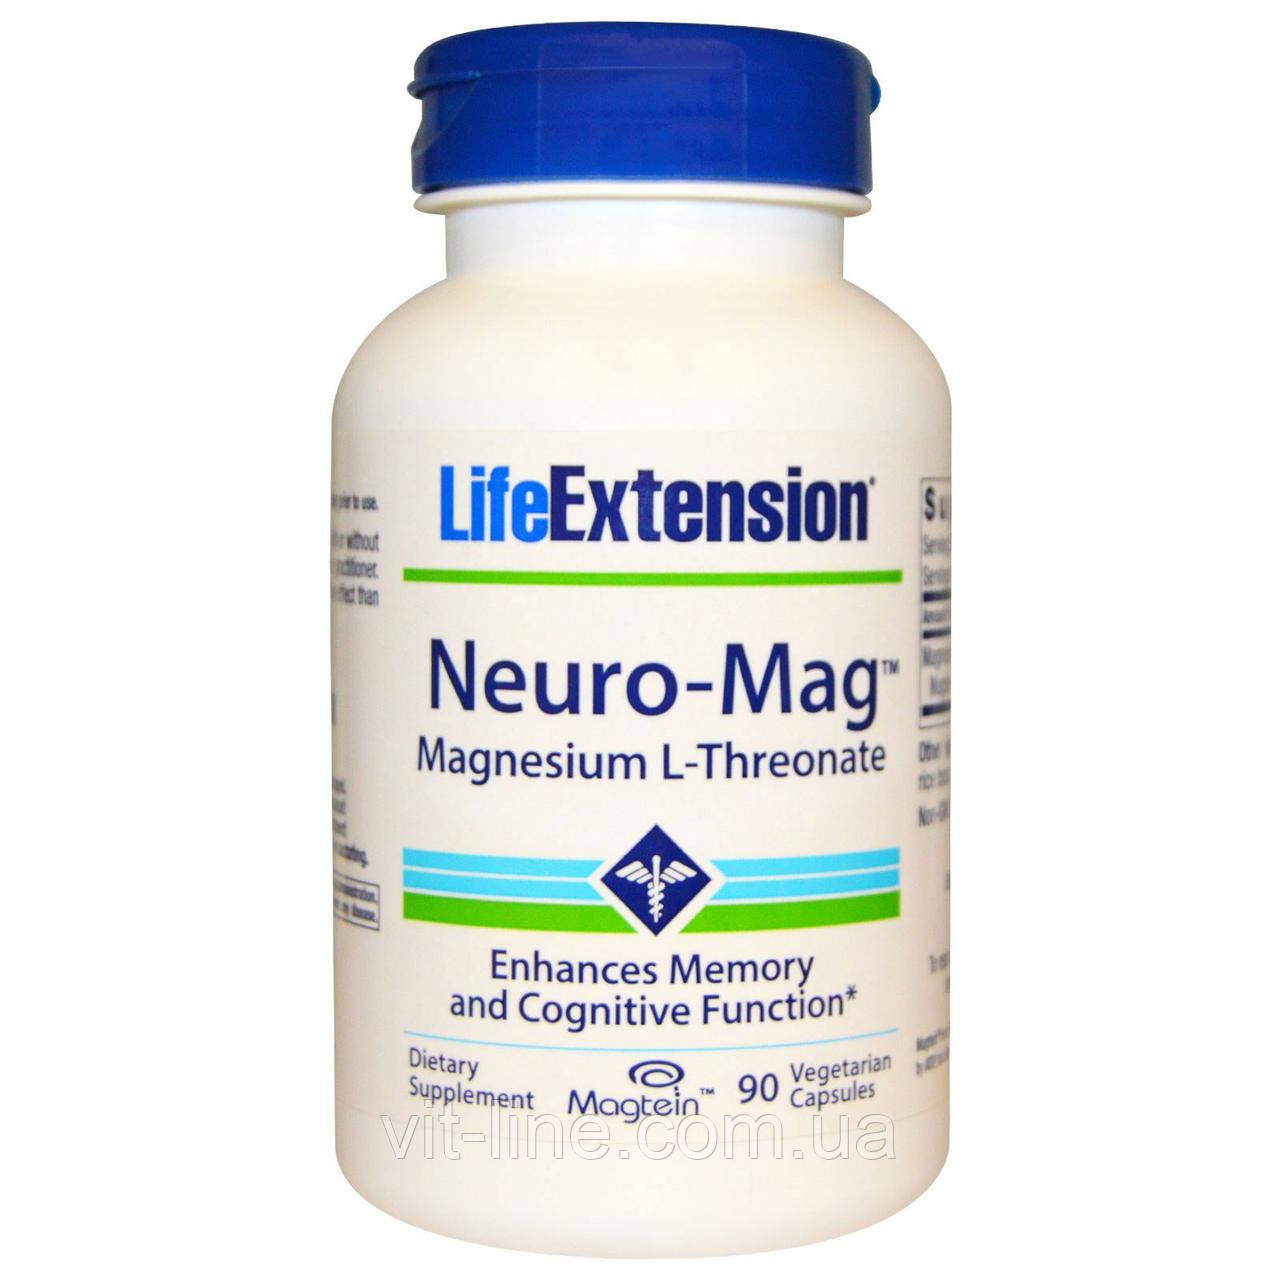 Life Extension, Neuro-Mag, магний L-треонат, 90 вегетарианских капсул